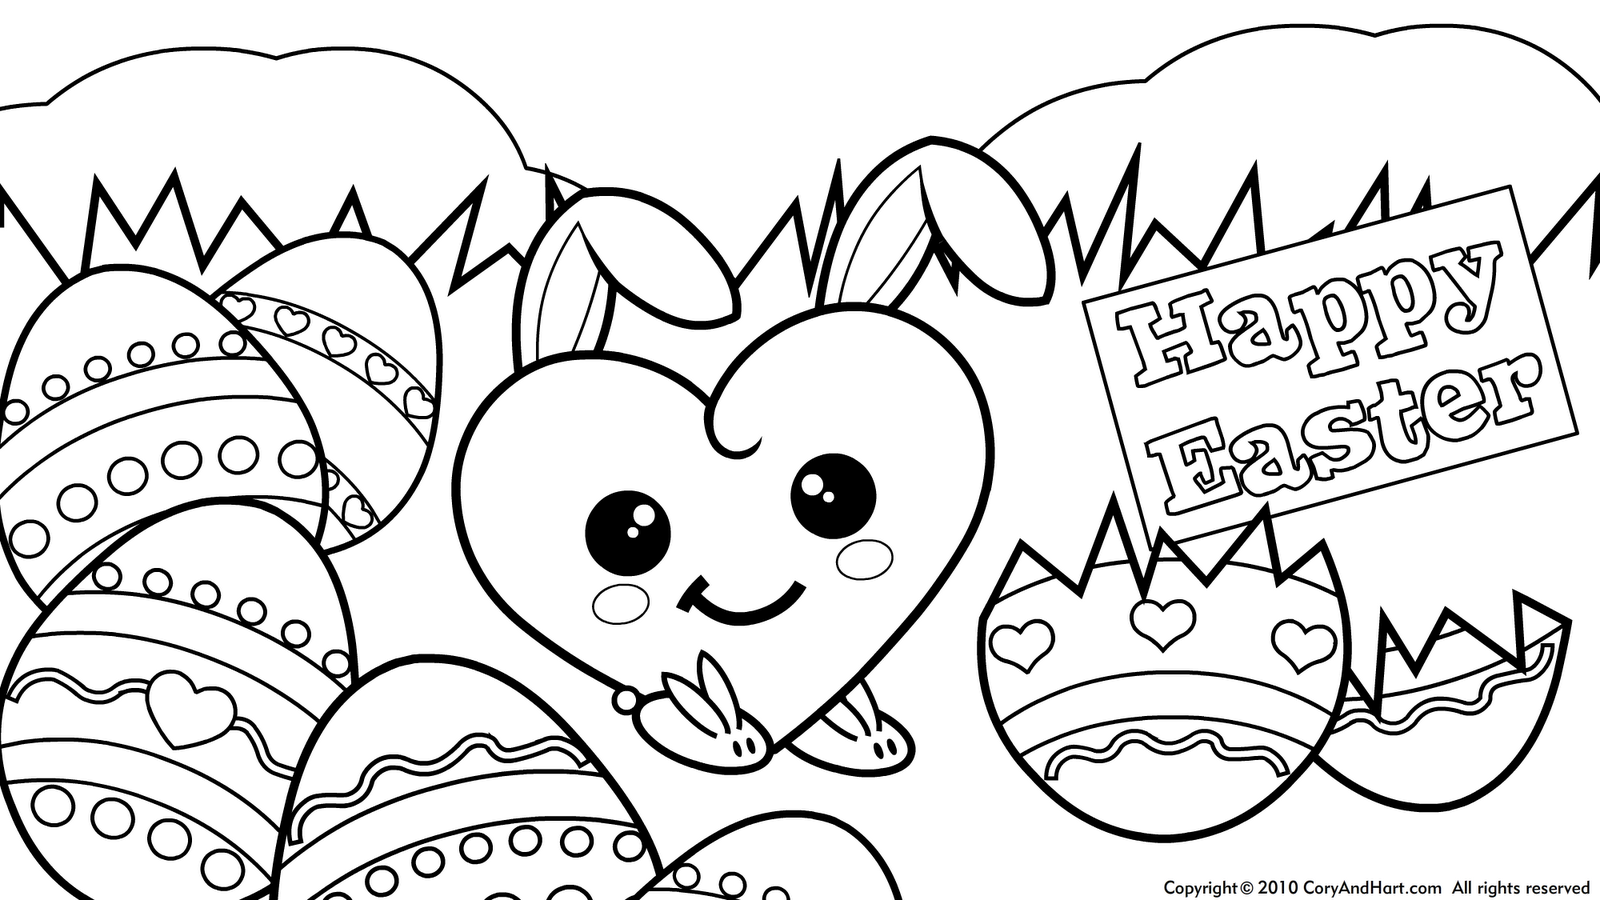 1000 images about hello kitty coloring pages on pinterest hello ... - Coloring Pages Kitty Easter